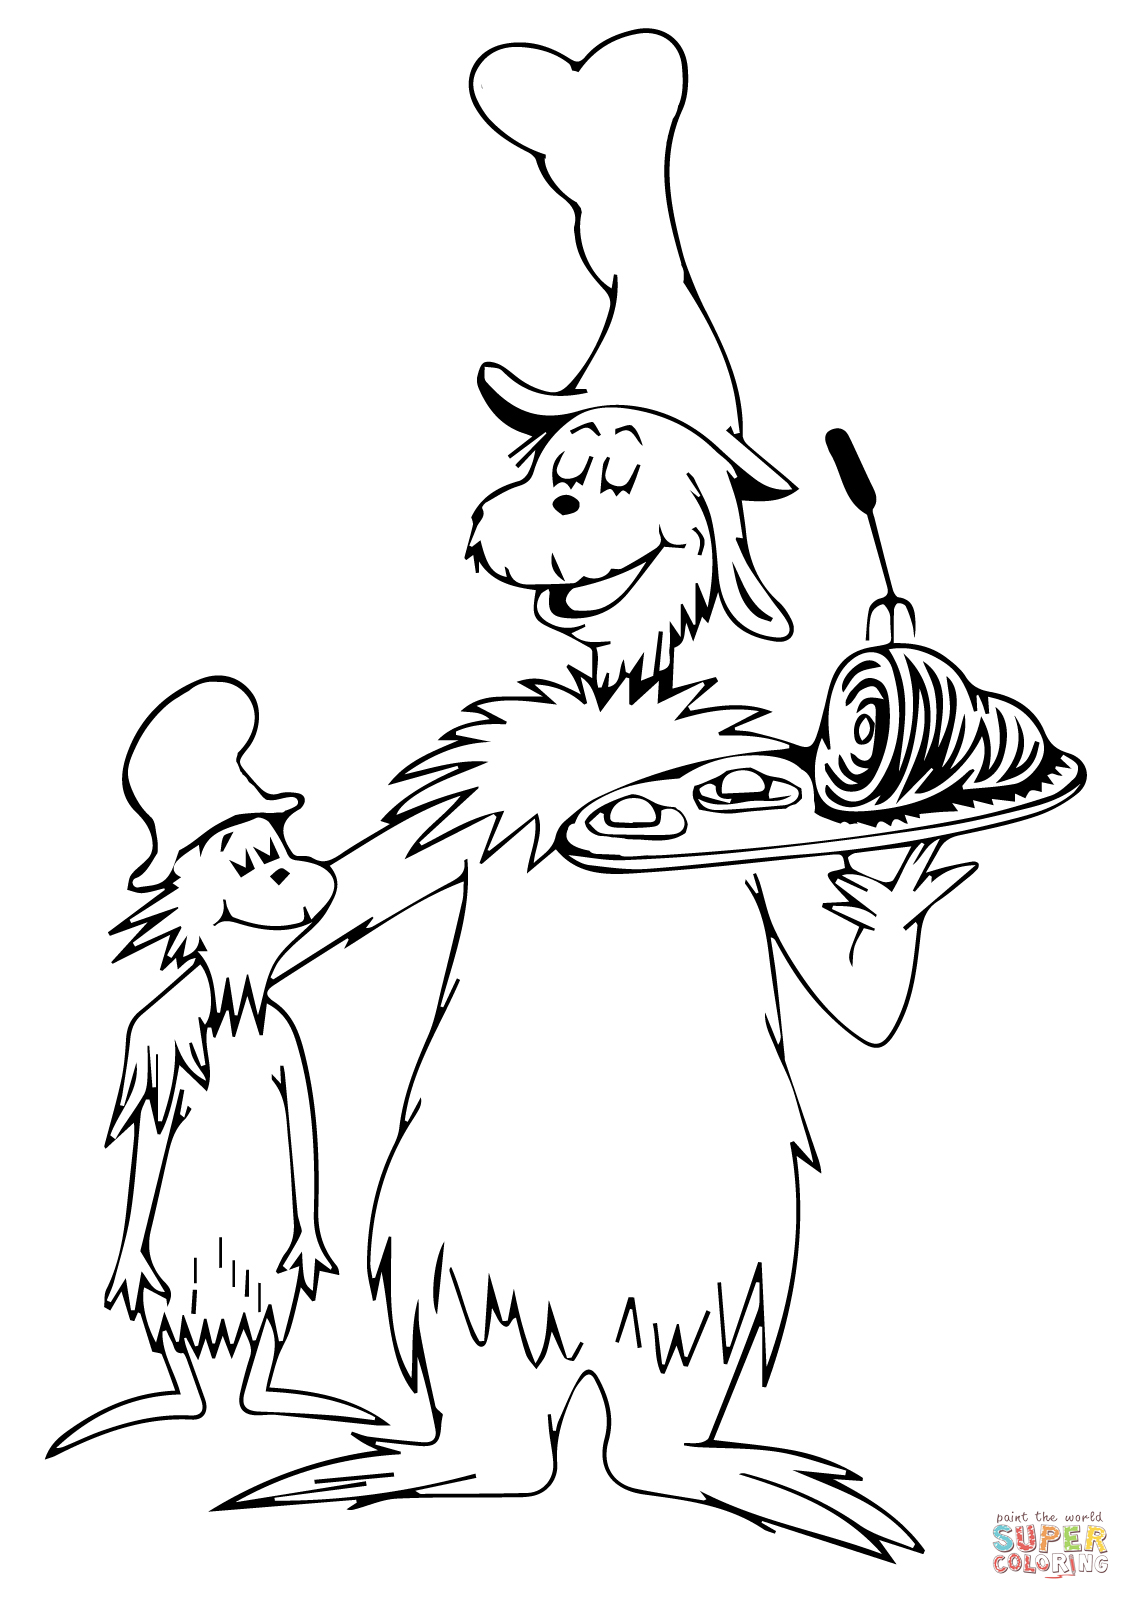 dr seuss coloring activity pages - photo#30